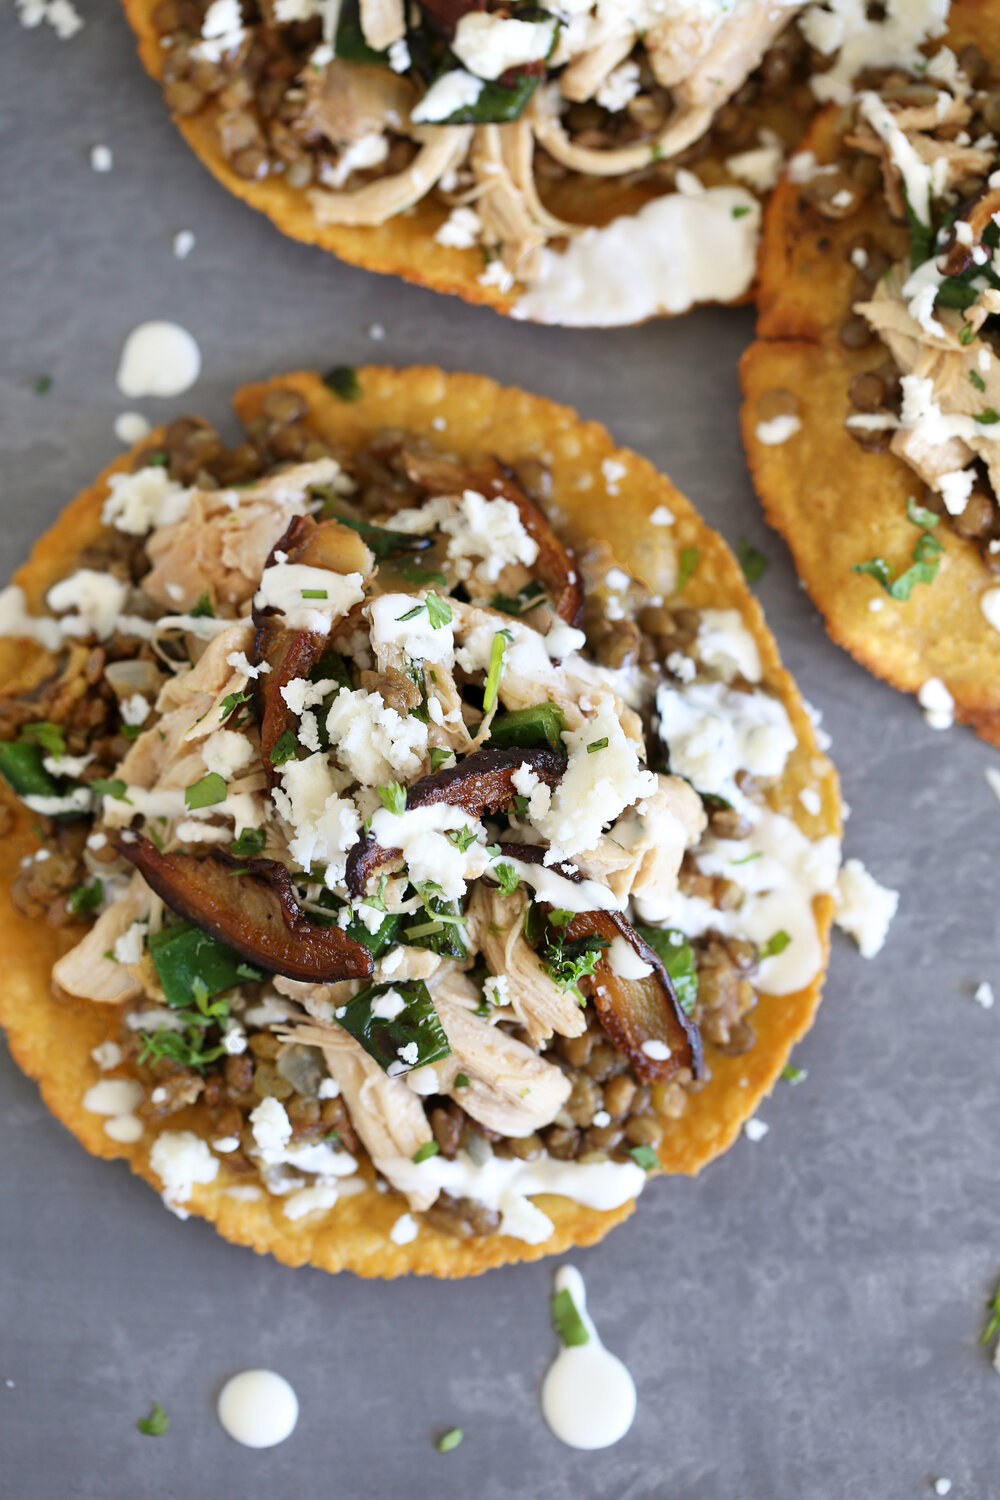 Cilantro Lime Braised Chicken Tostada with Refried Lentils